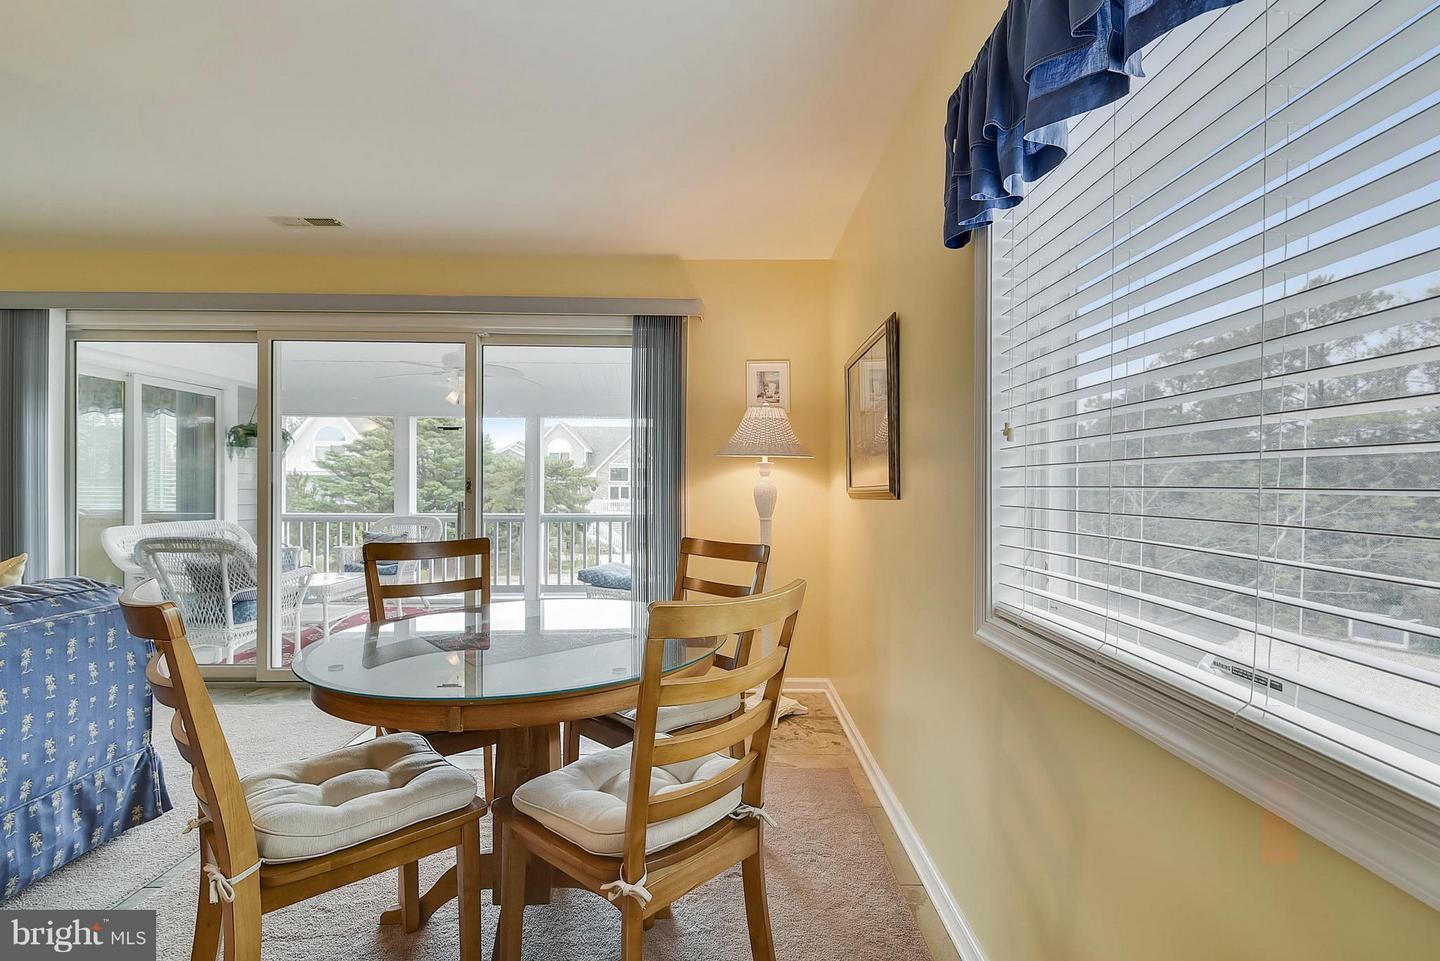 1002344128-300986985797-2018-11-07-14-16-58 39634 Seatrout Cir | North Bethany, DE Real Estate For Sale | MLS# 1002344128  - 1st Choice Properties